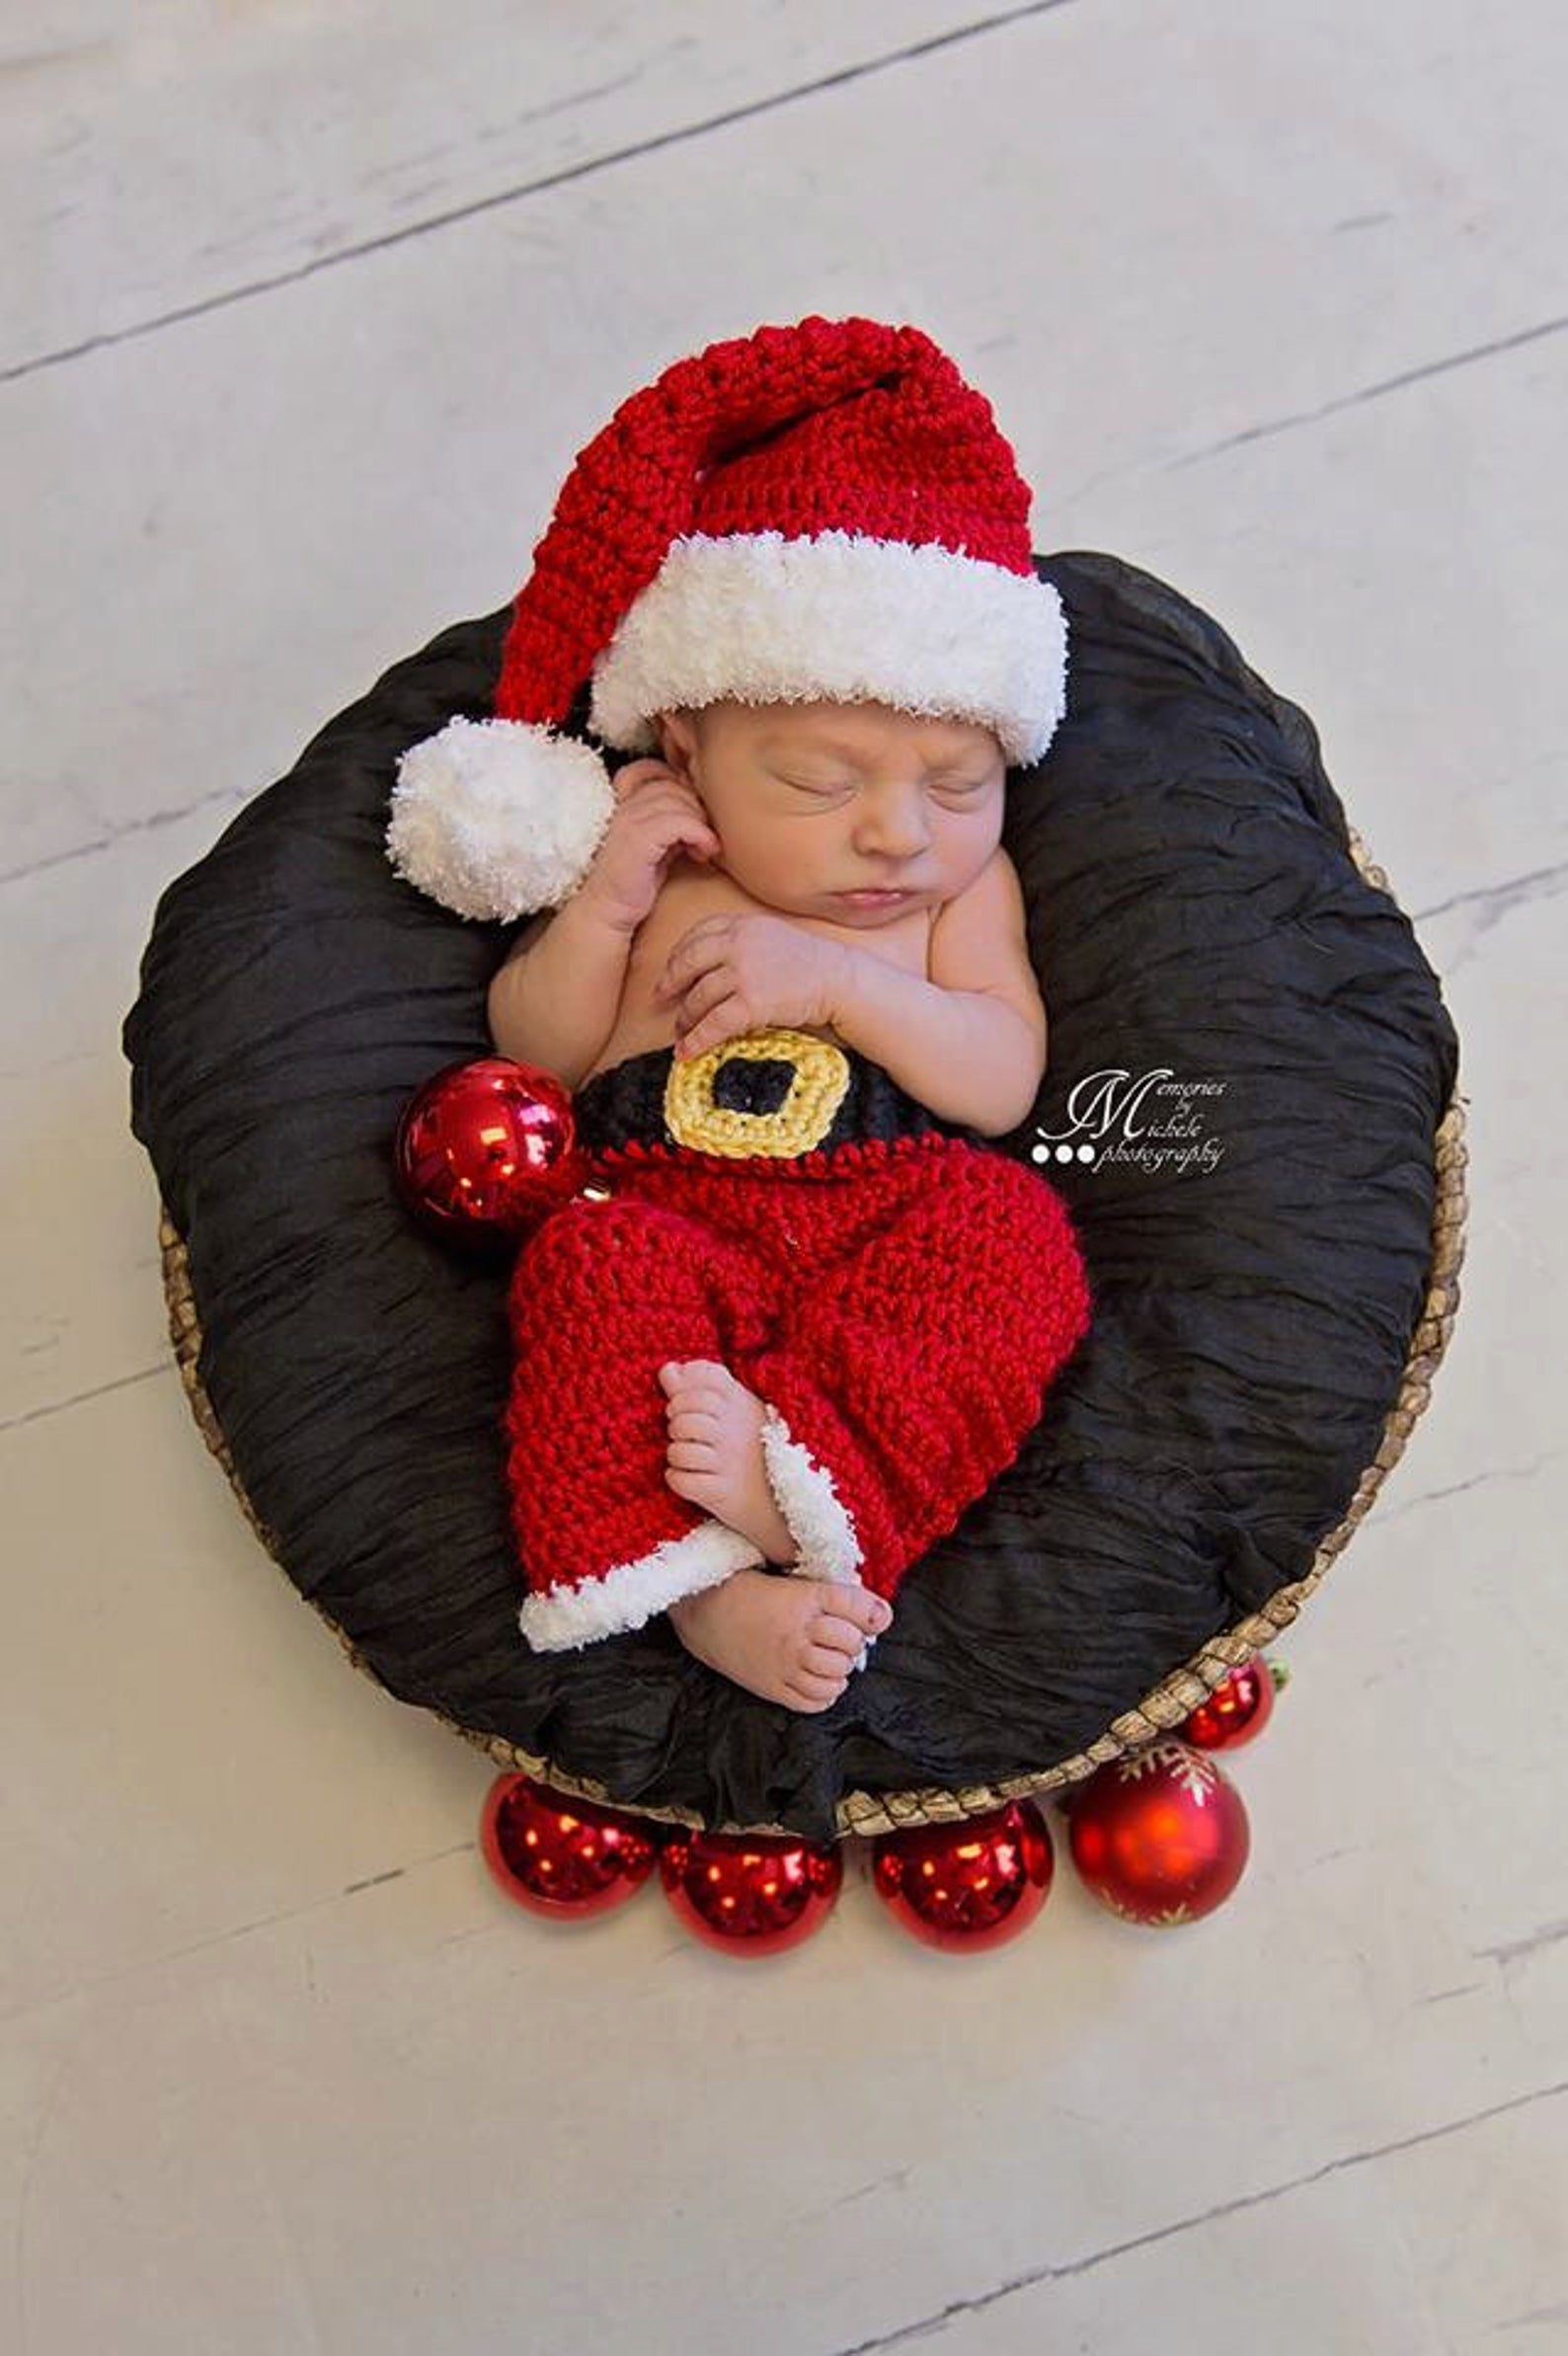 Crocheted Christmas Outfits For Babies The Whoot